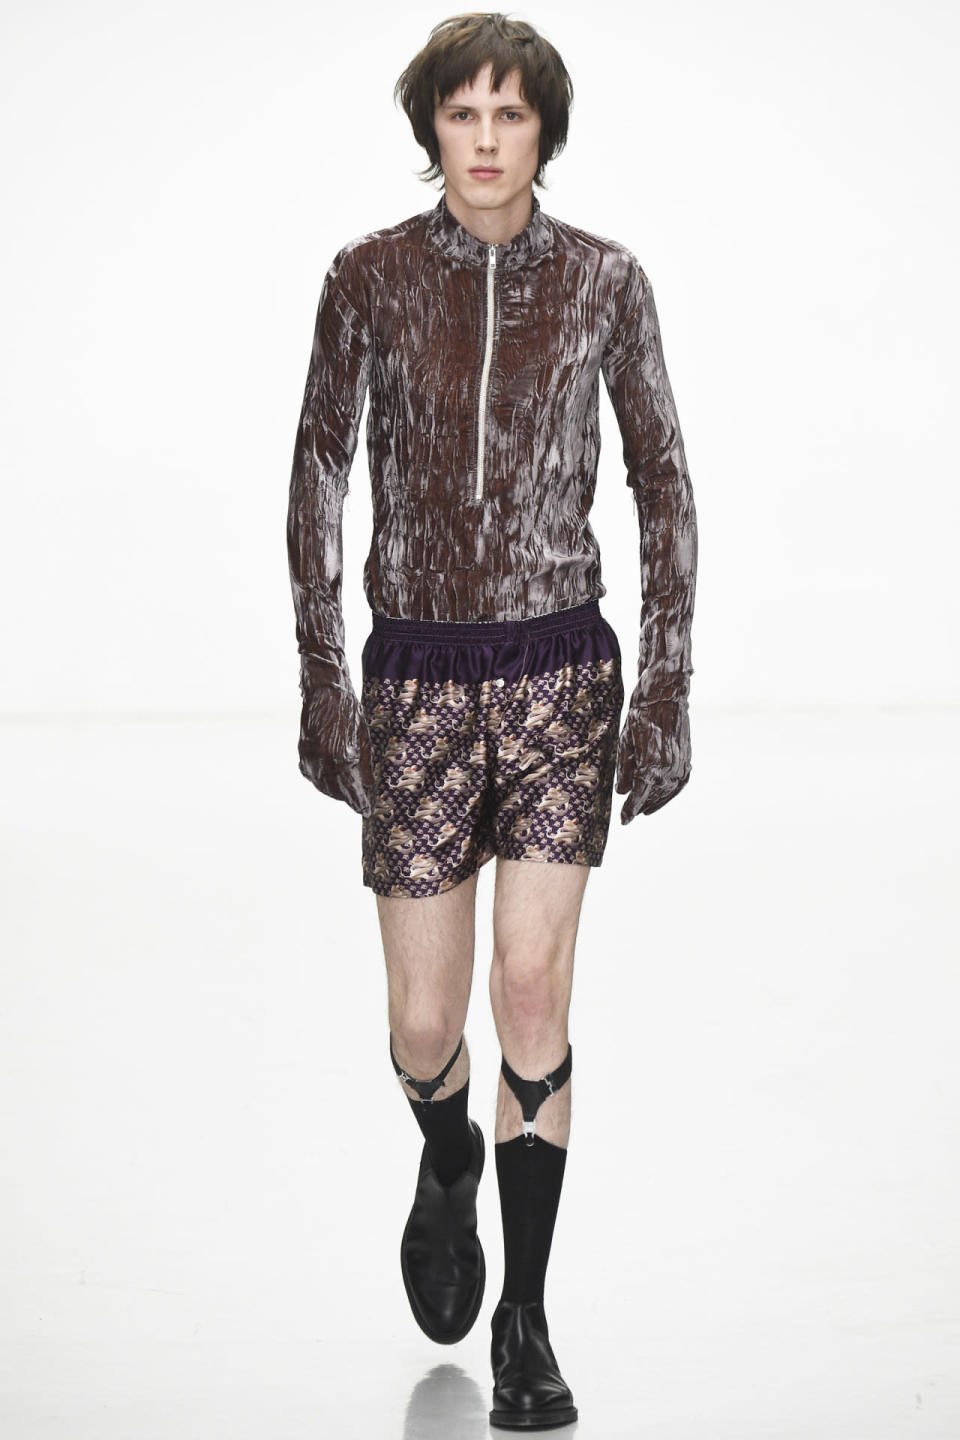 <p>A crushed velvet top with built-in hands and a silk boxers is probably not something most dudes would want to wear, but here's to hoping.<i> Photo: Getty Images</i></p>